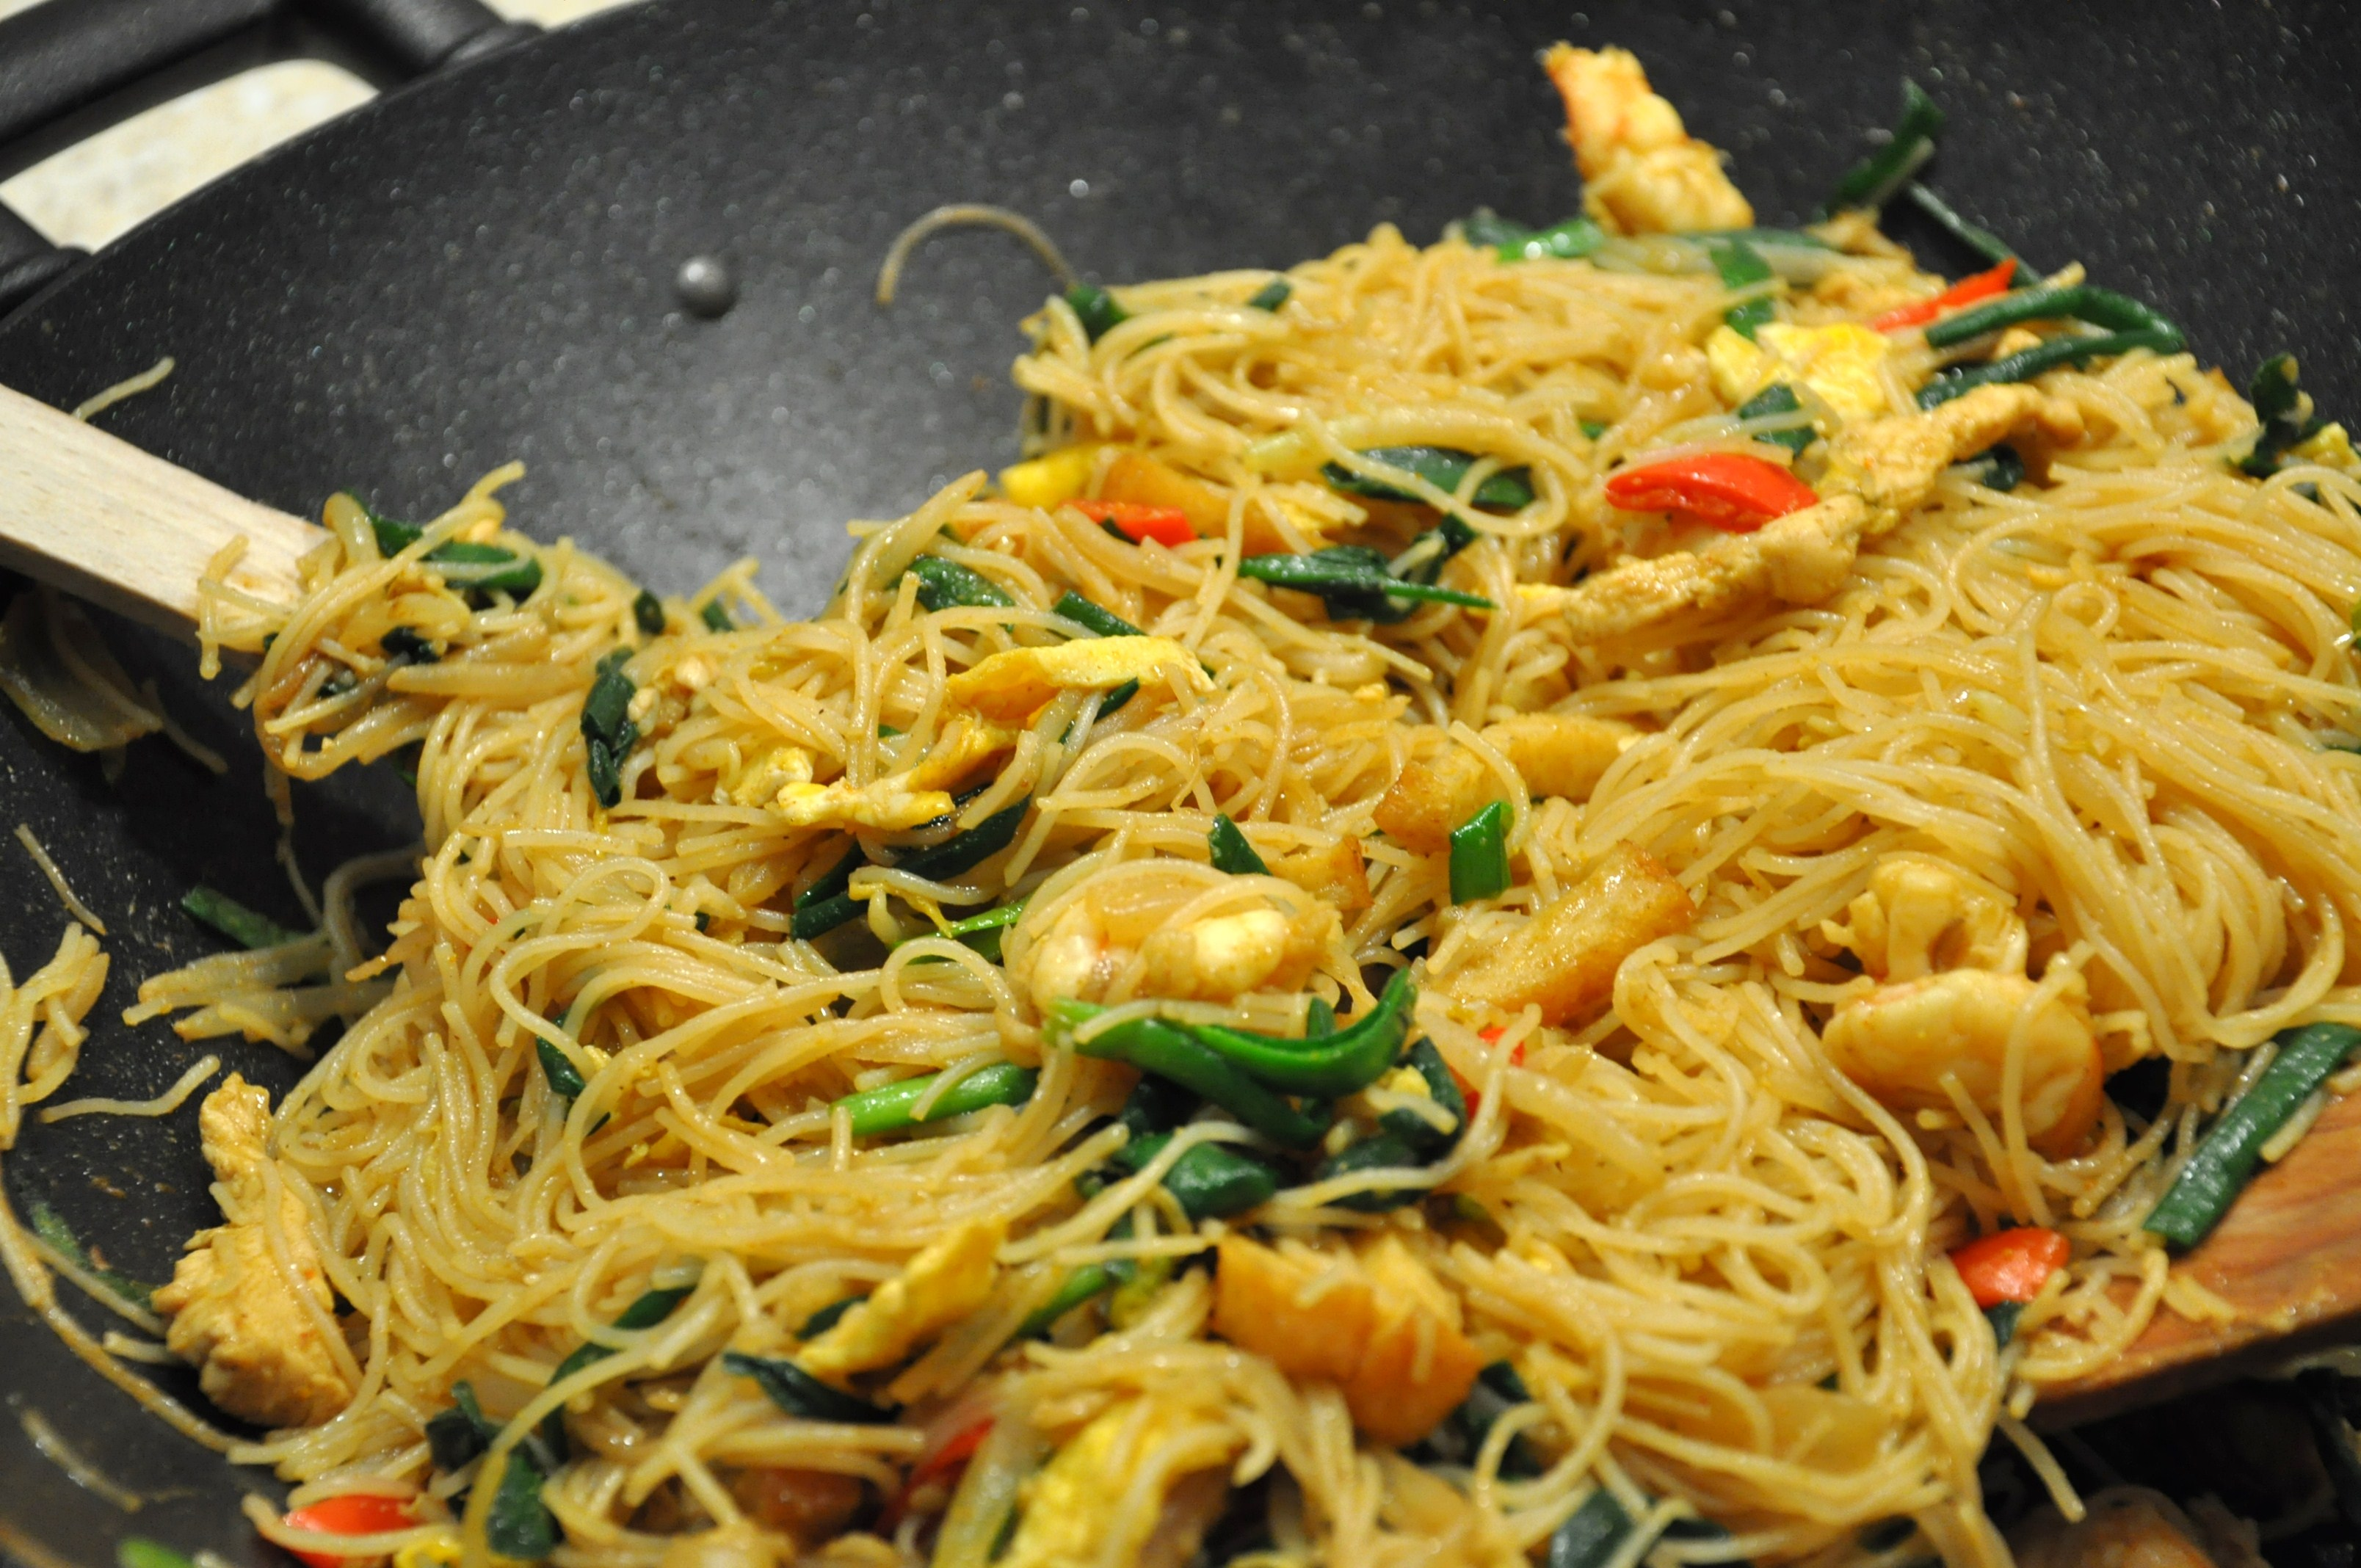 Imperial chef Singapore Rice Noodle